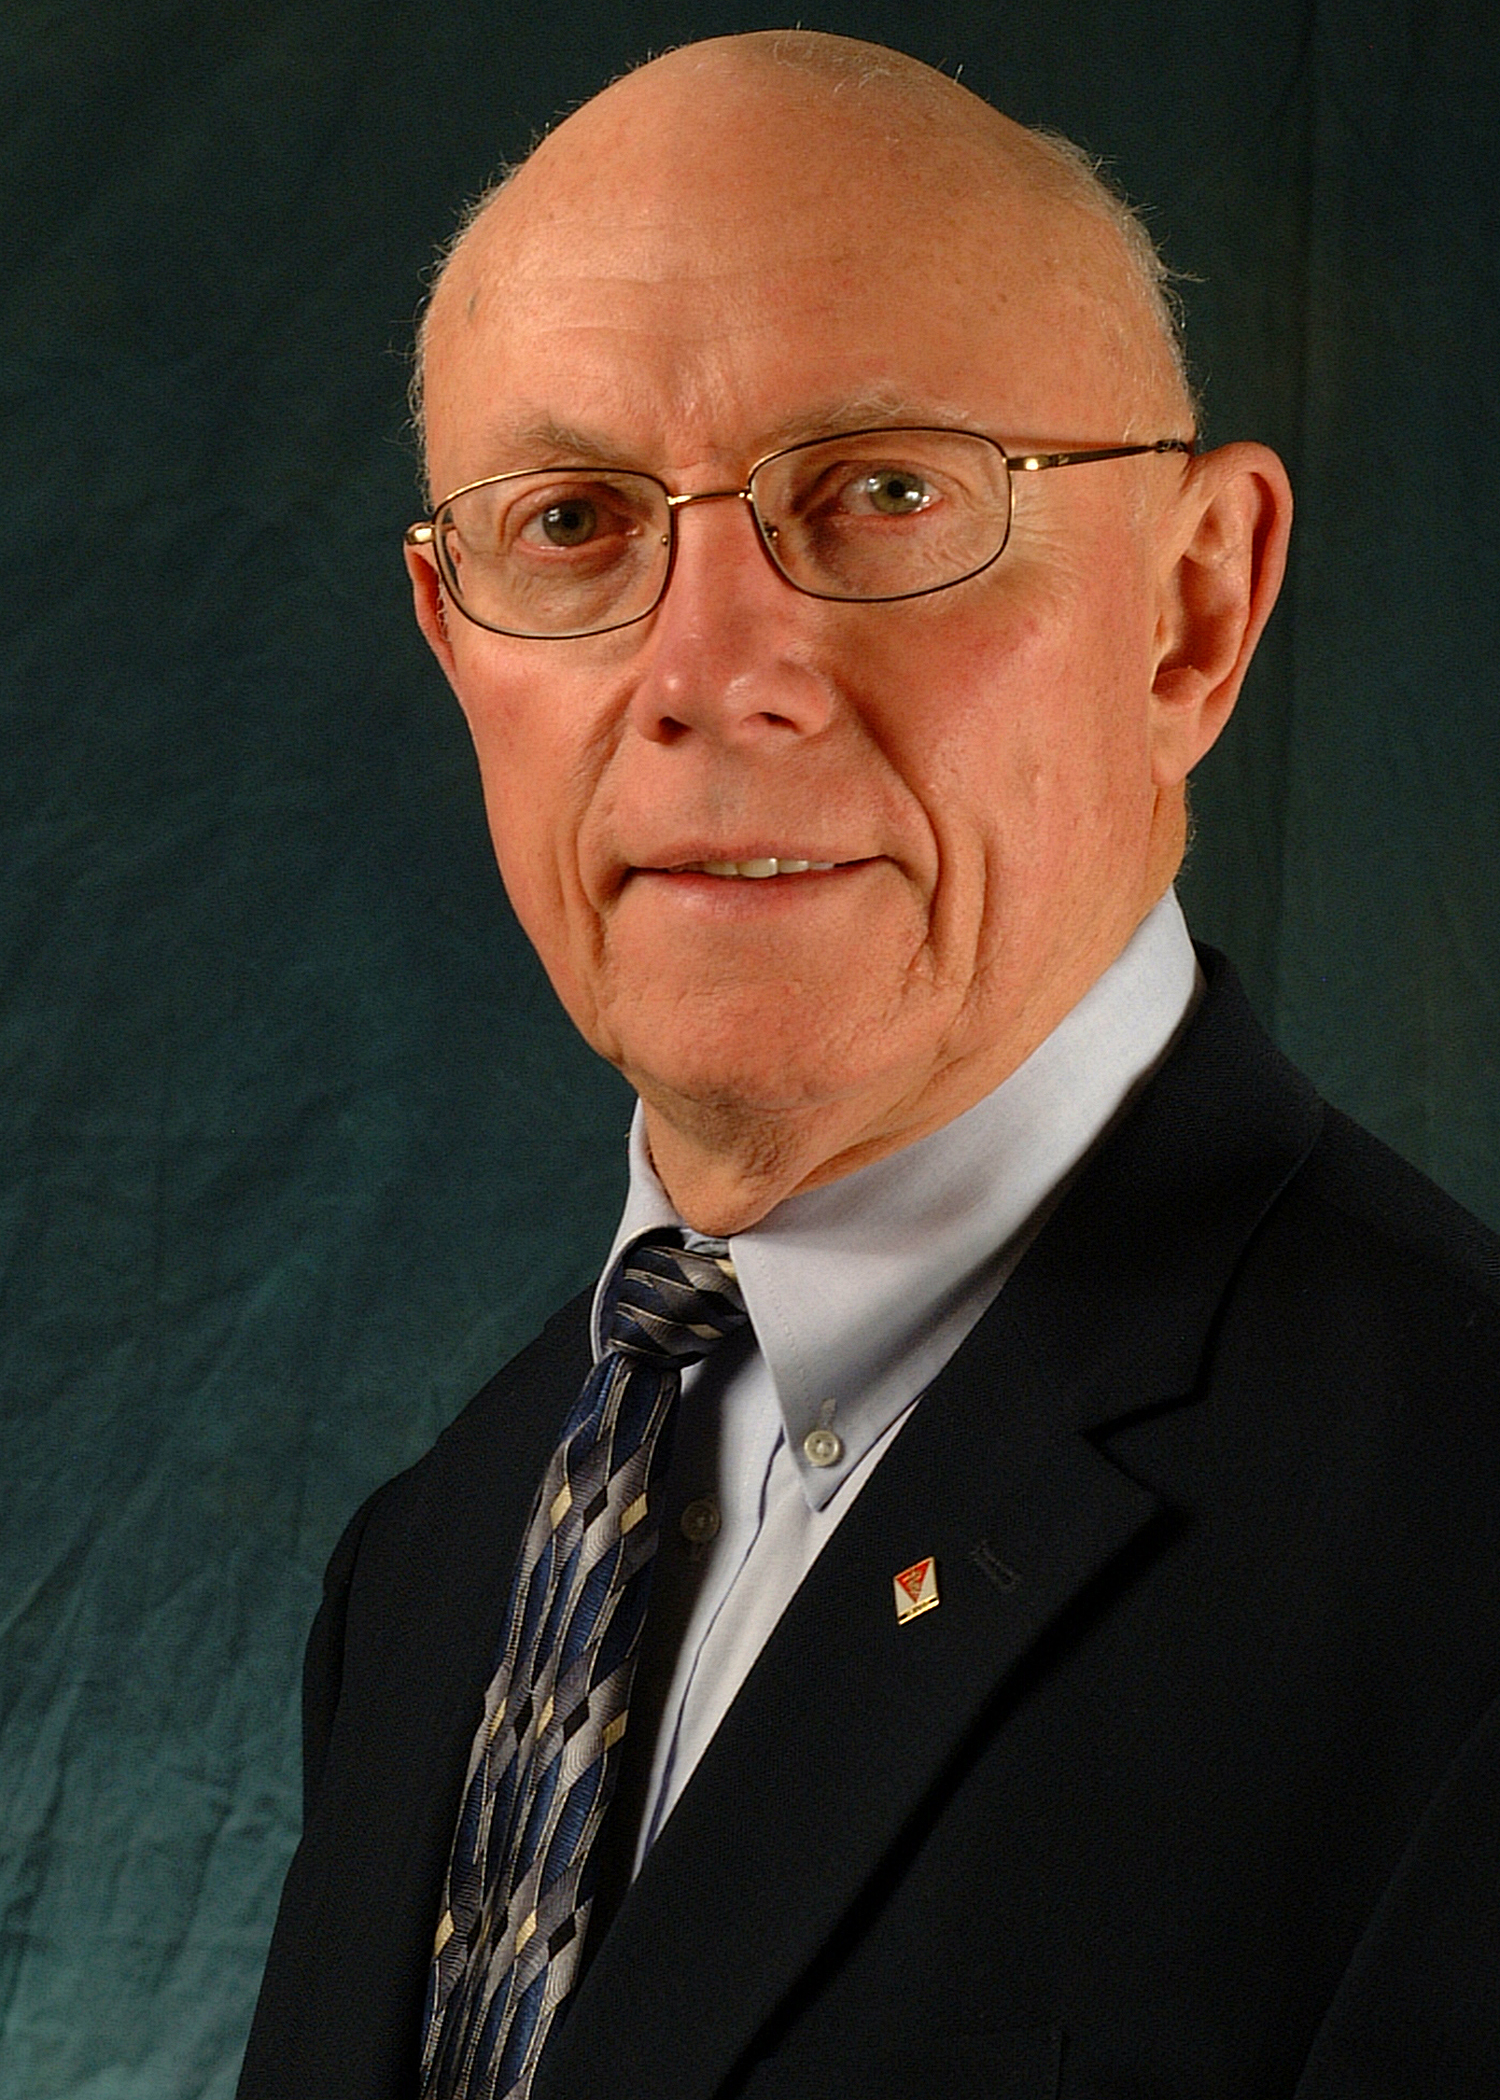 Dr. Grant H. Turnwald